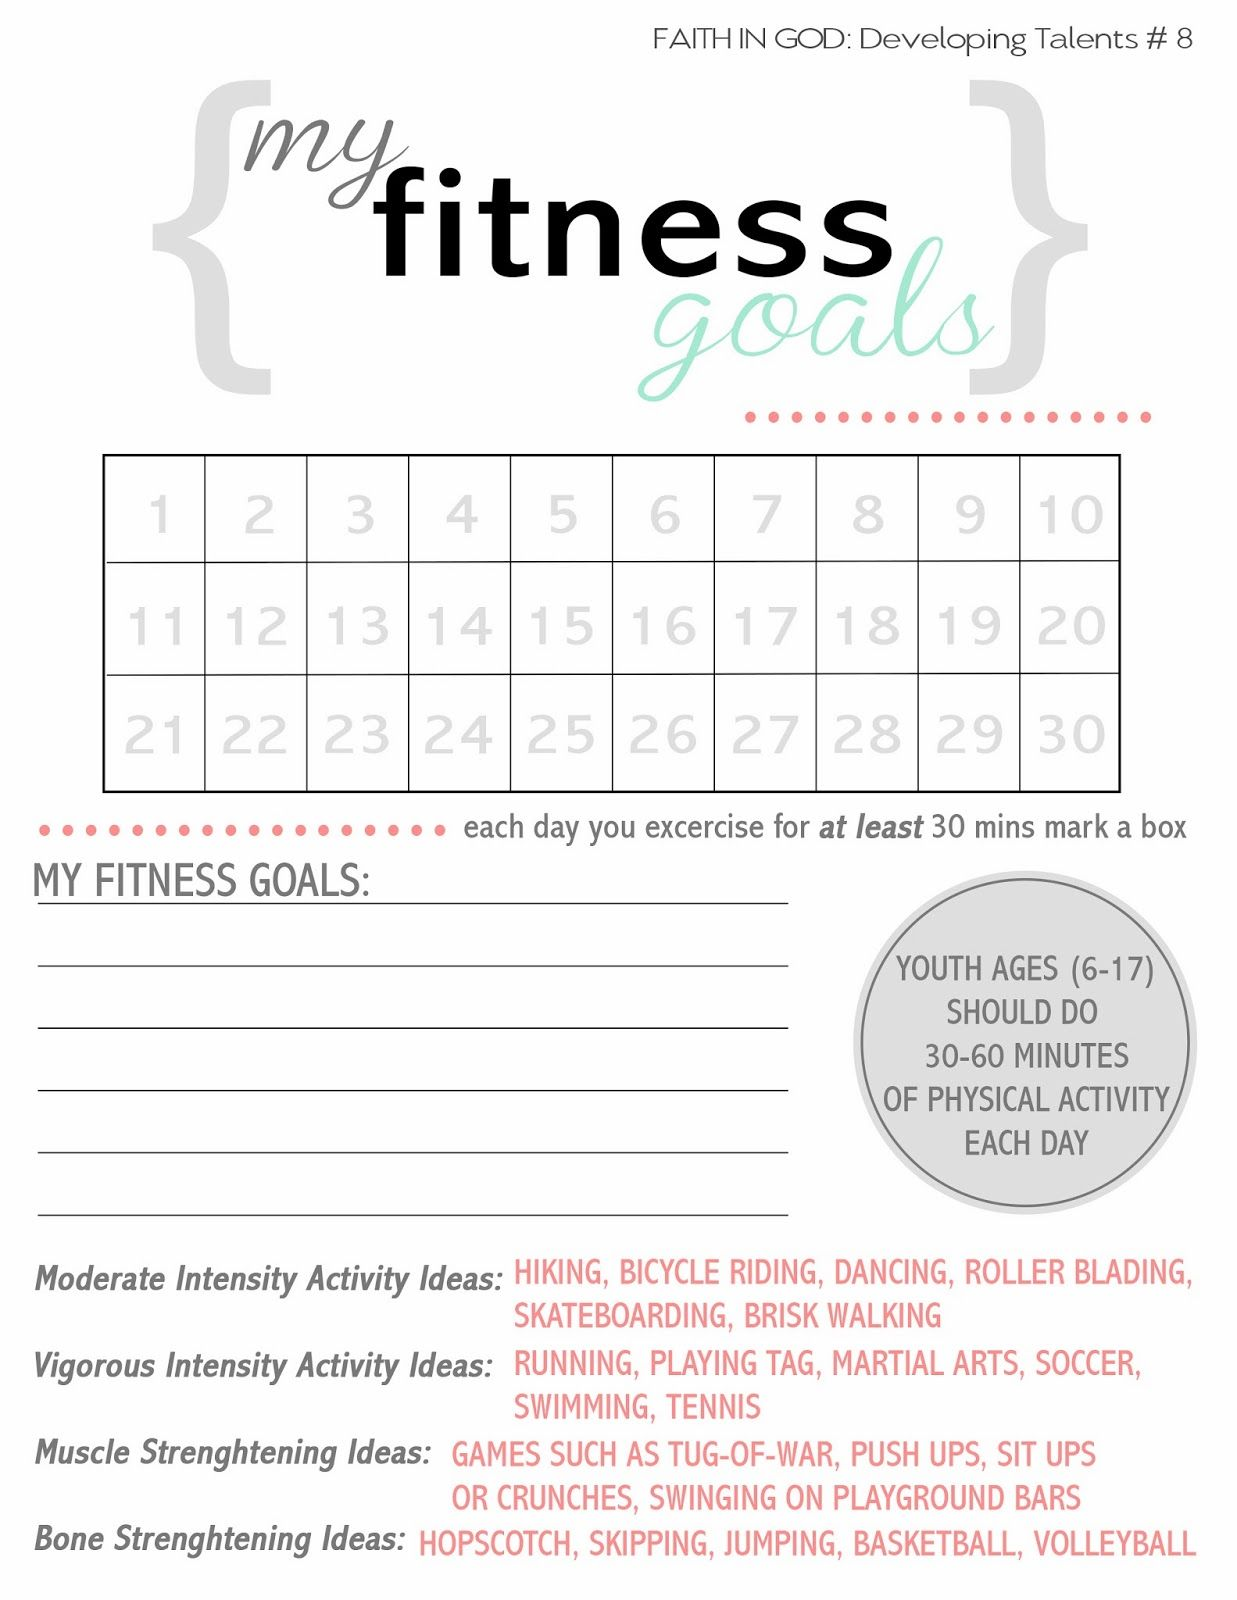 Worksheets Fitness Goals Worksheet the hill family activity days fitness goals printable faith in god body is a